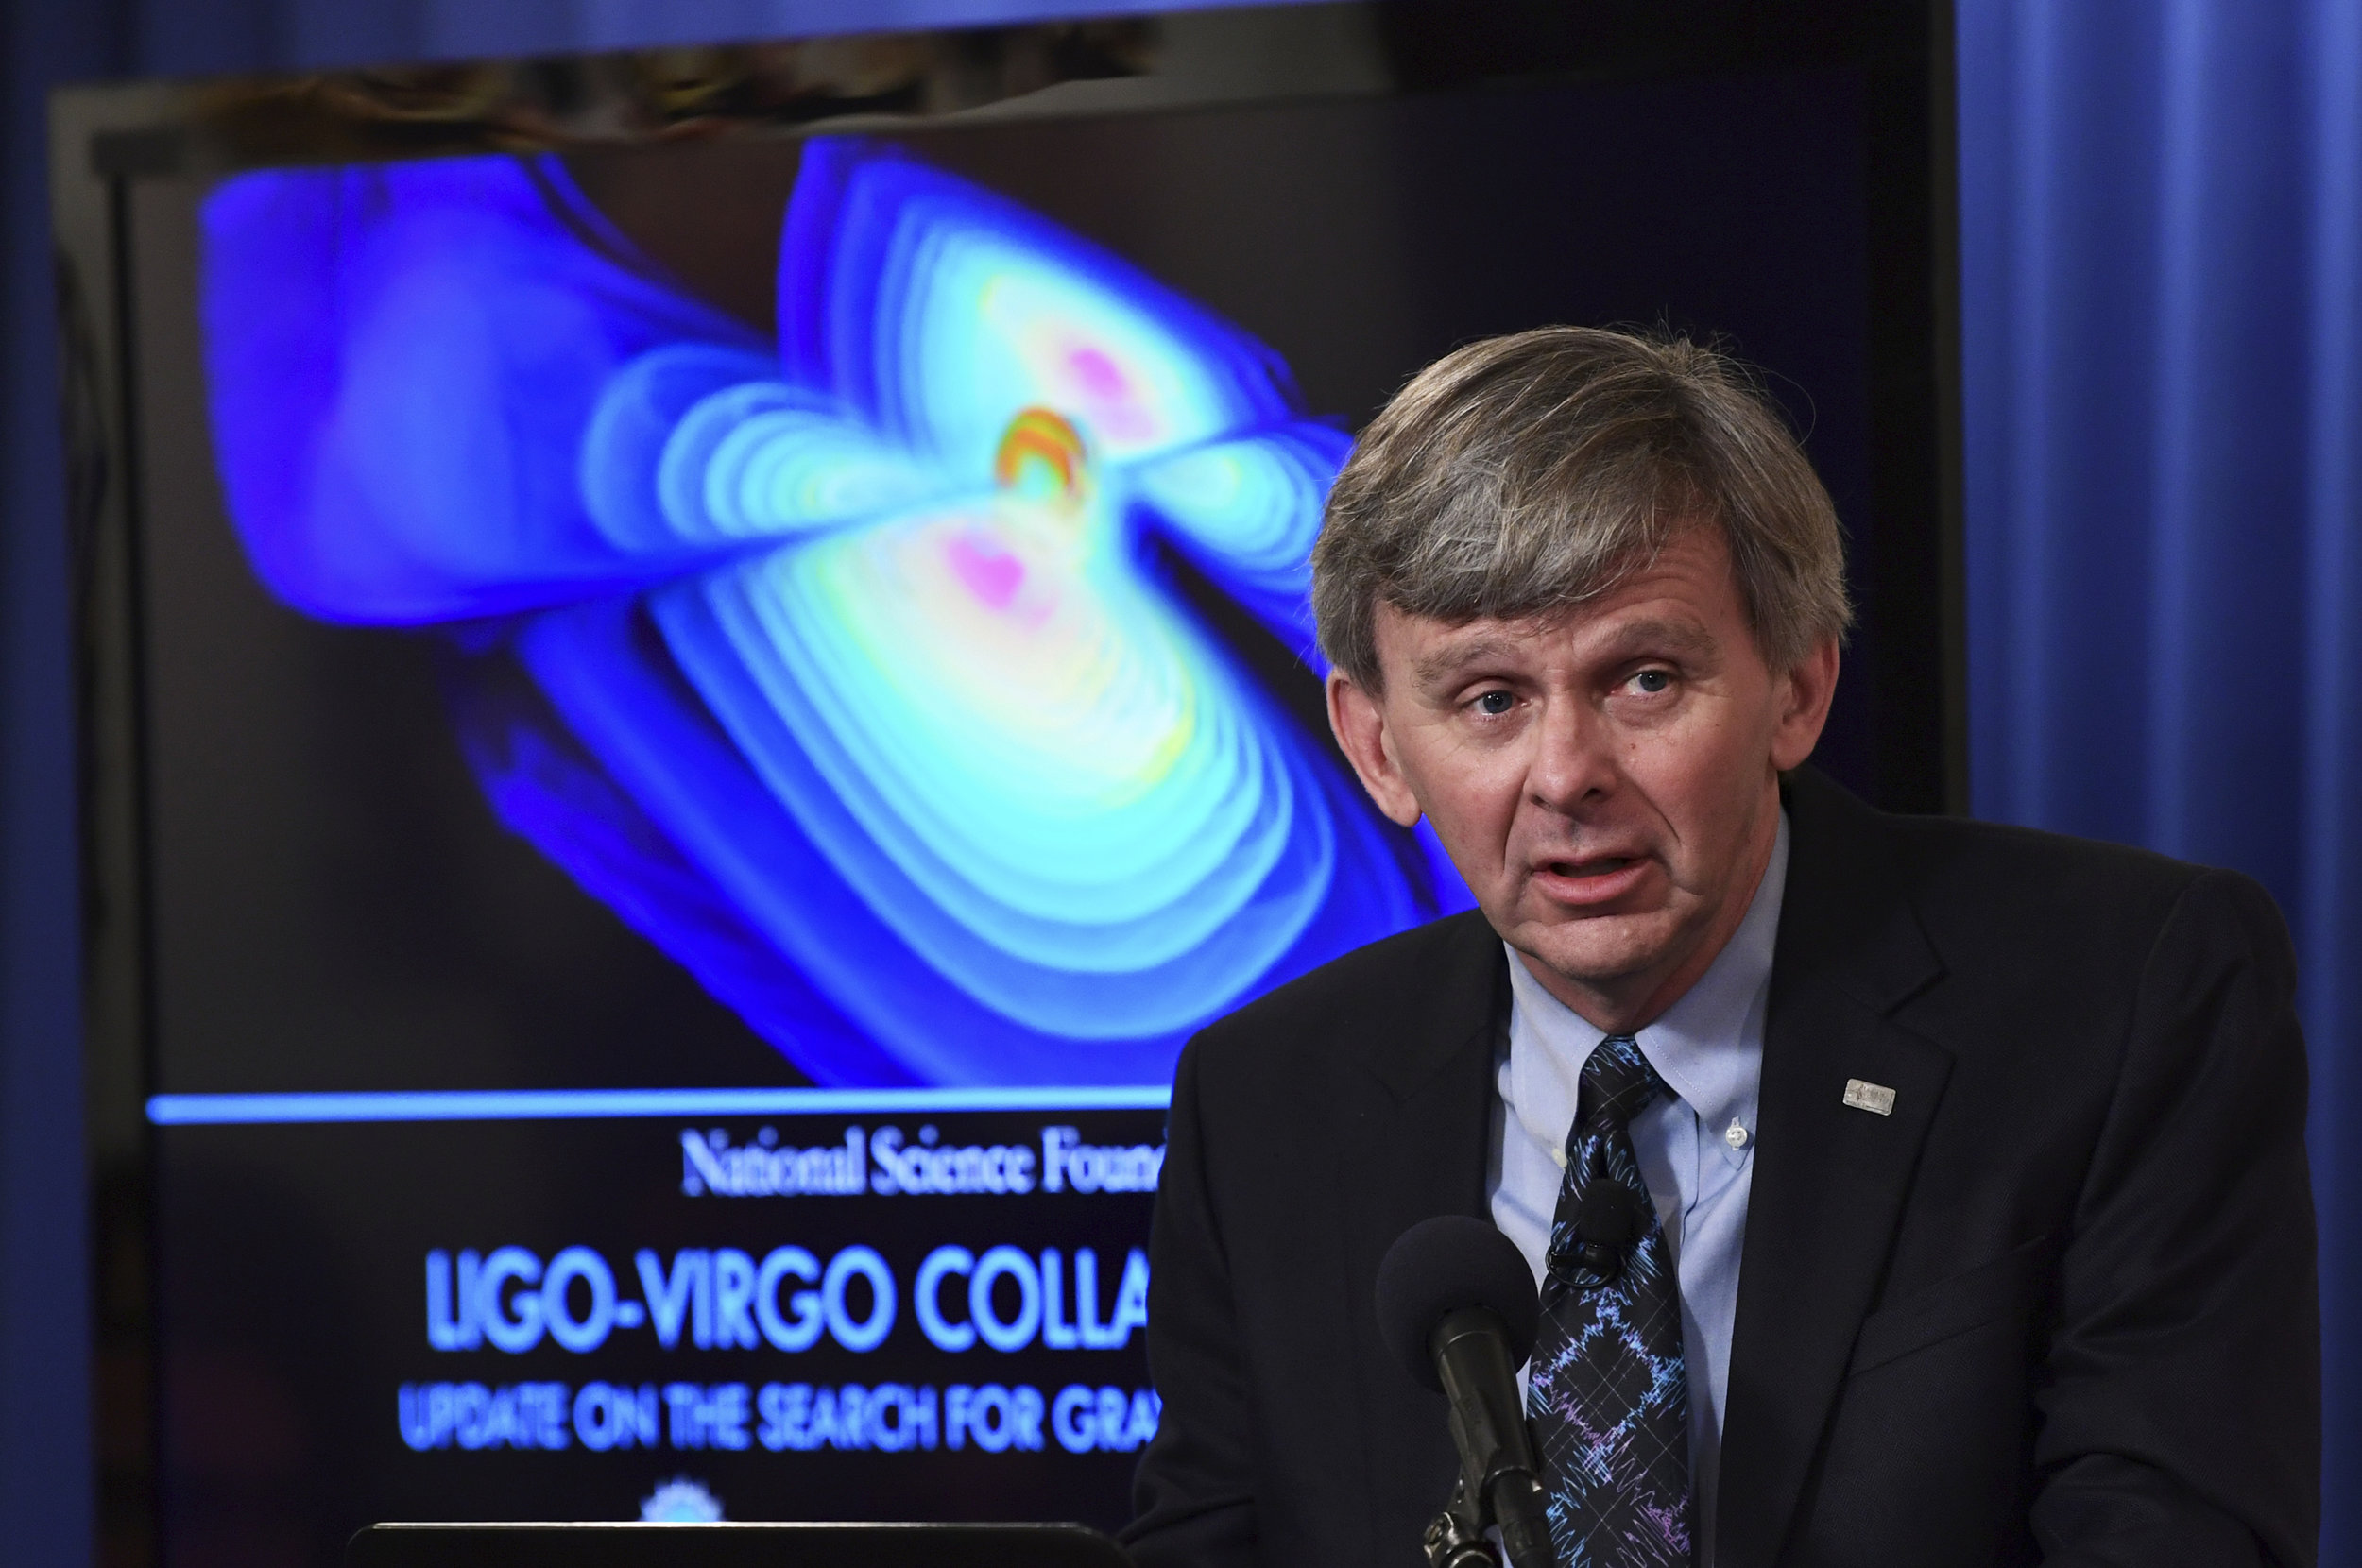 David Reitze of the California Institute of Technology and the executive director of the Laser Interferometer Gravitational-Wave Observatory, or LIGO, speaks at the National Press Club in Washington, Monday, Oct. 16, 2017, during an announcement on one of the most violent events in the cosmos that was witnessed completely for the first time in August and tells scientists where gold and other heavy elements come from. (AP Photo/Susan Walsh)